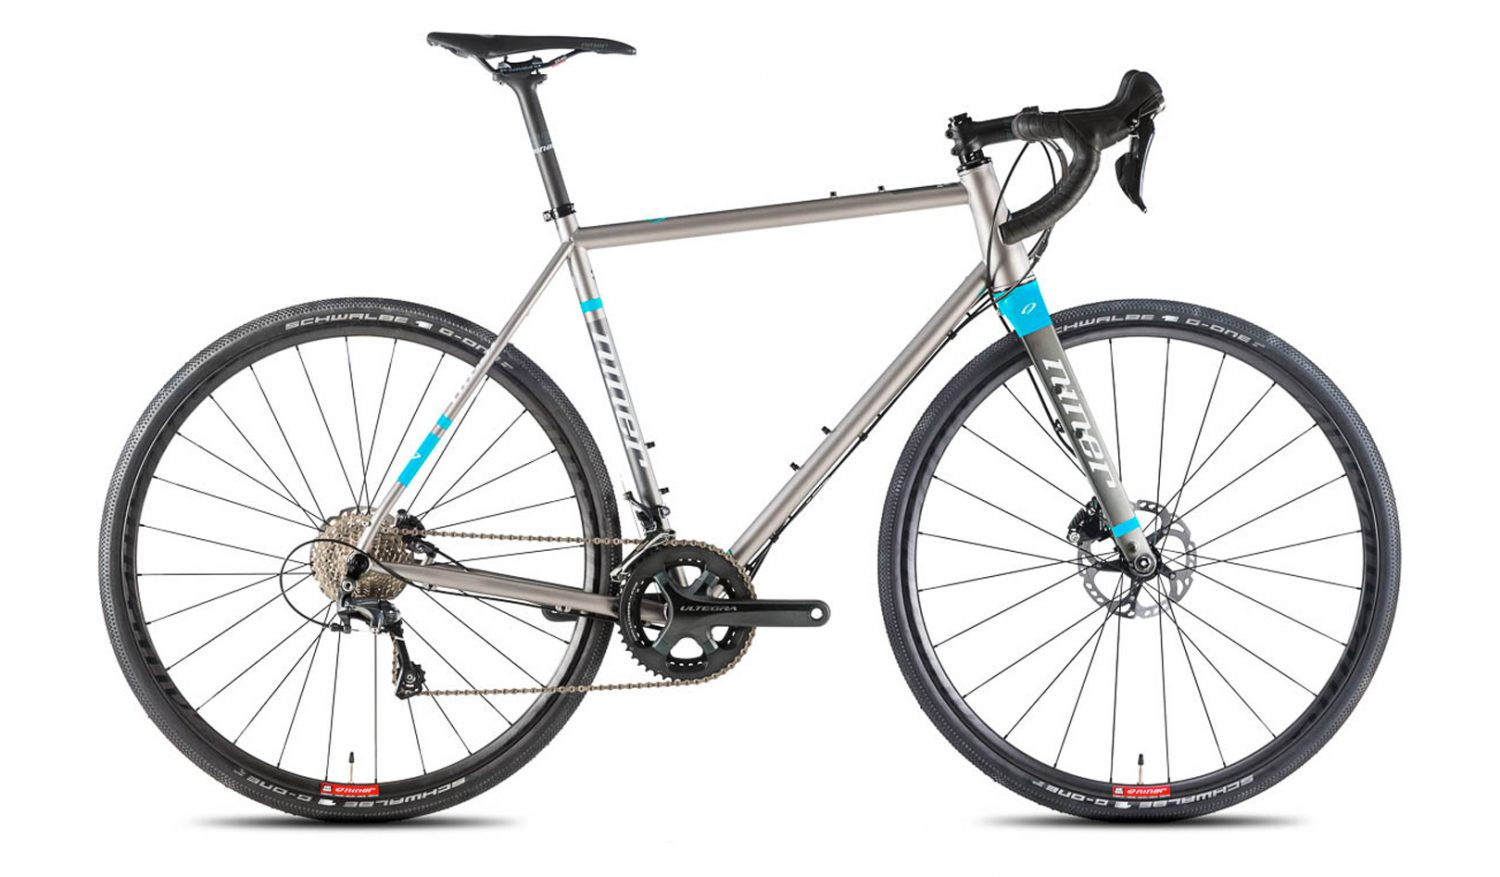 Niner RLT 9 Steel Adventure Road Bike